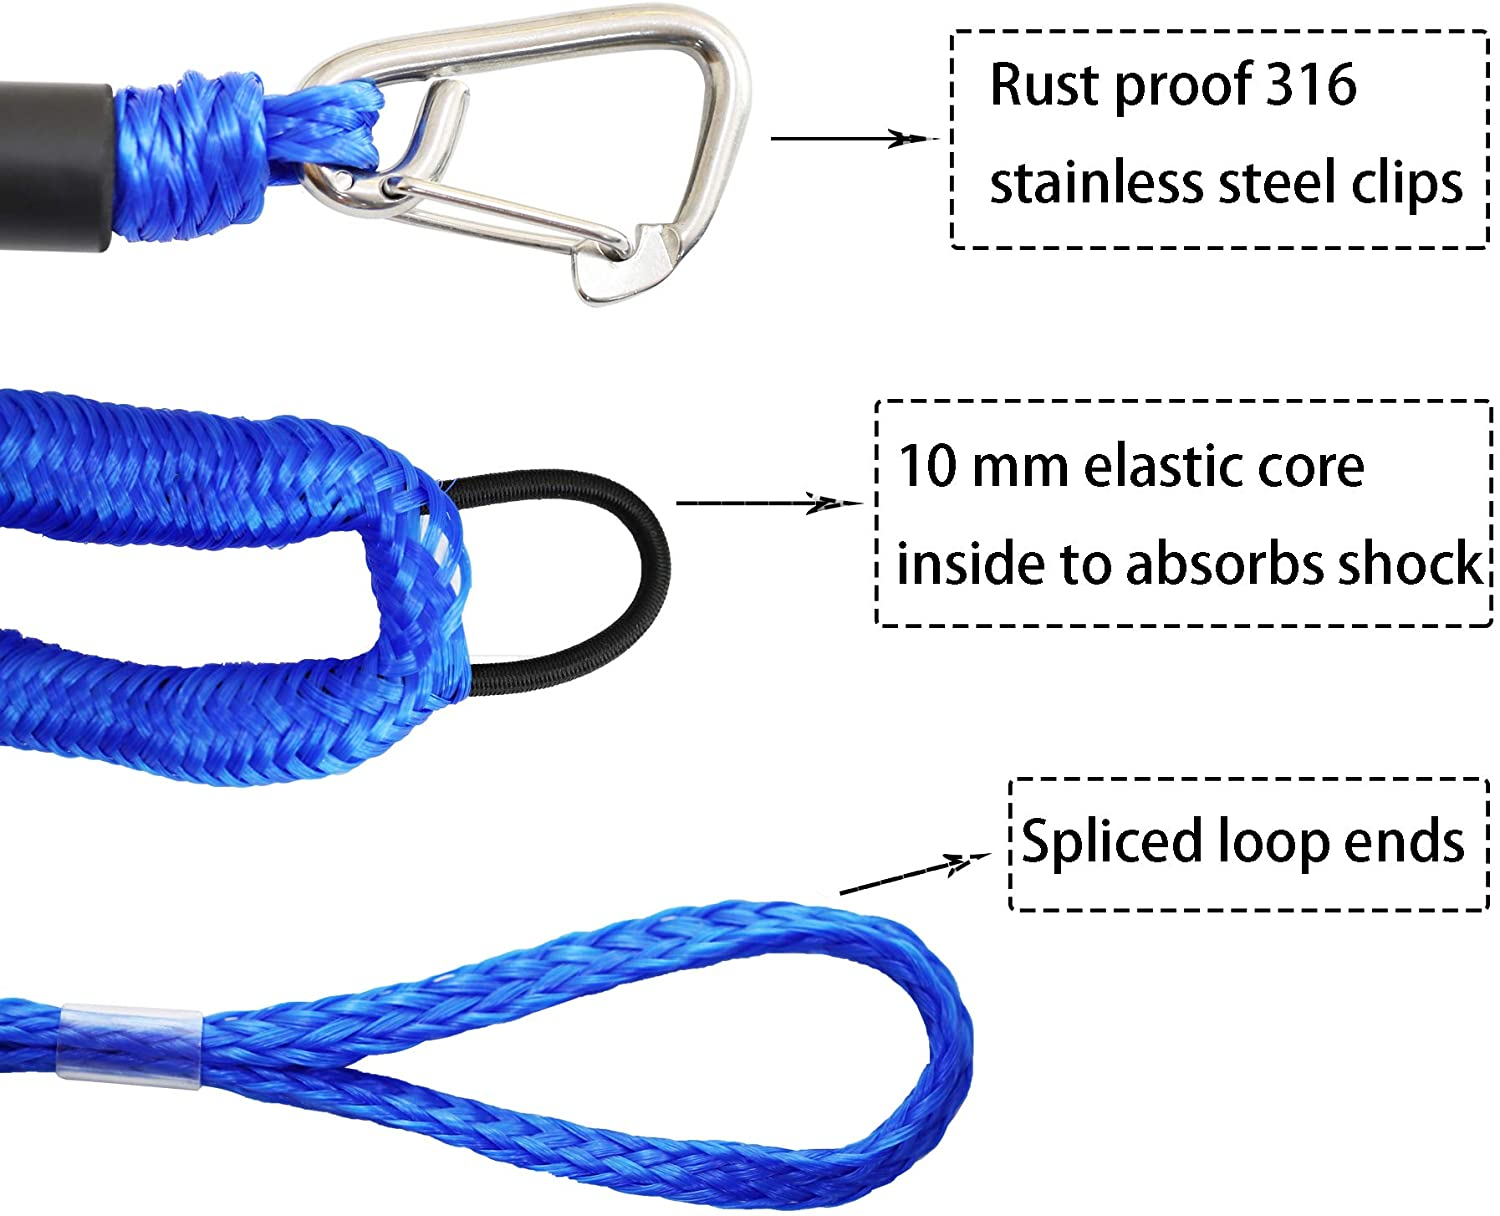 SeaDoo Watercraft 4pcs Jet Ski Power Boat Wave Runner Blue Bungee Boat Dock Lines with Hook 4 Feet Dockline Mooring Rope Boat Accessories Docking Lines PWC Shock Cords for Boats Kayak Canoe